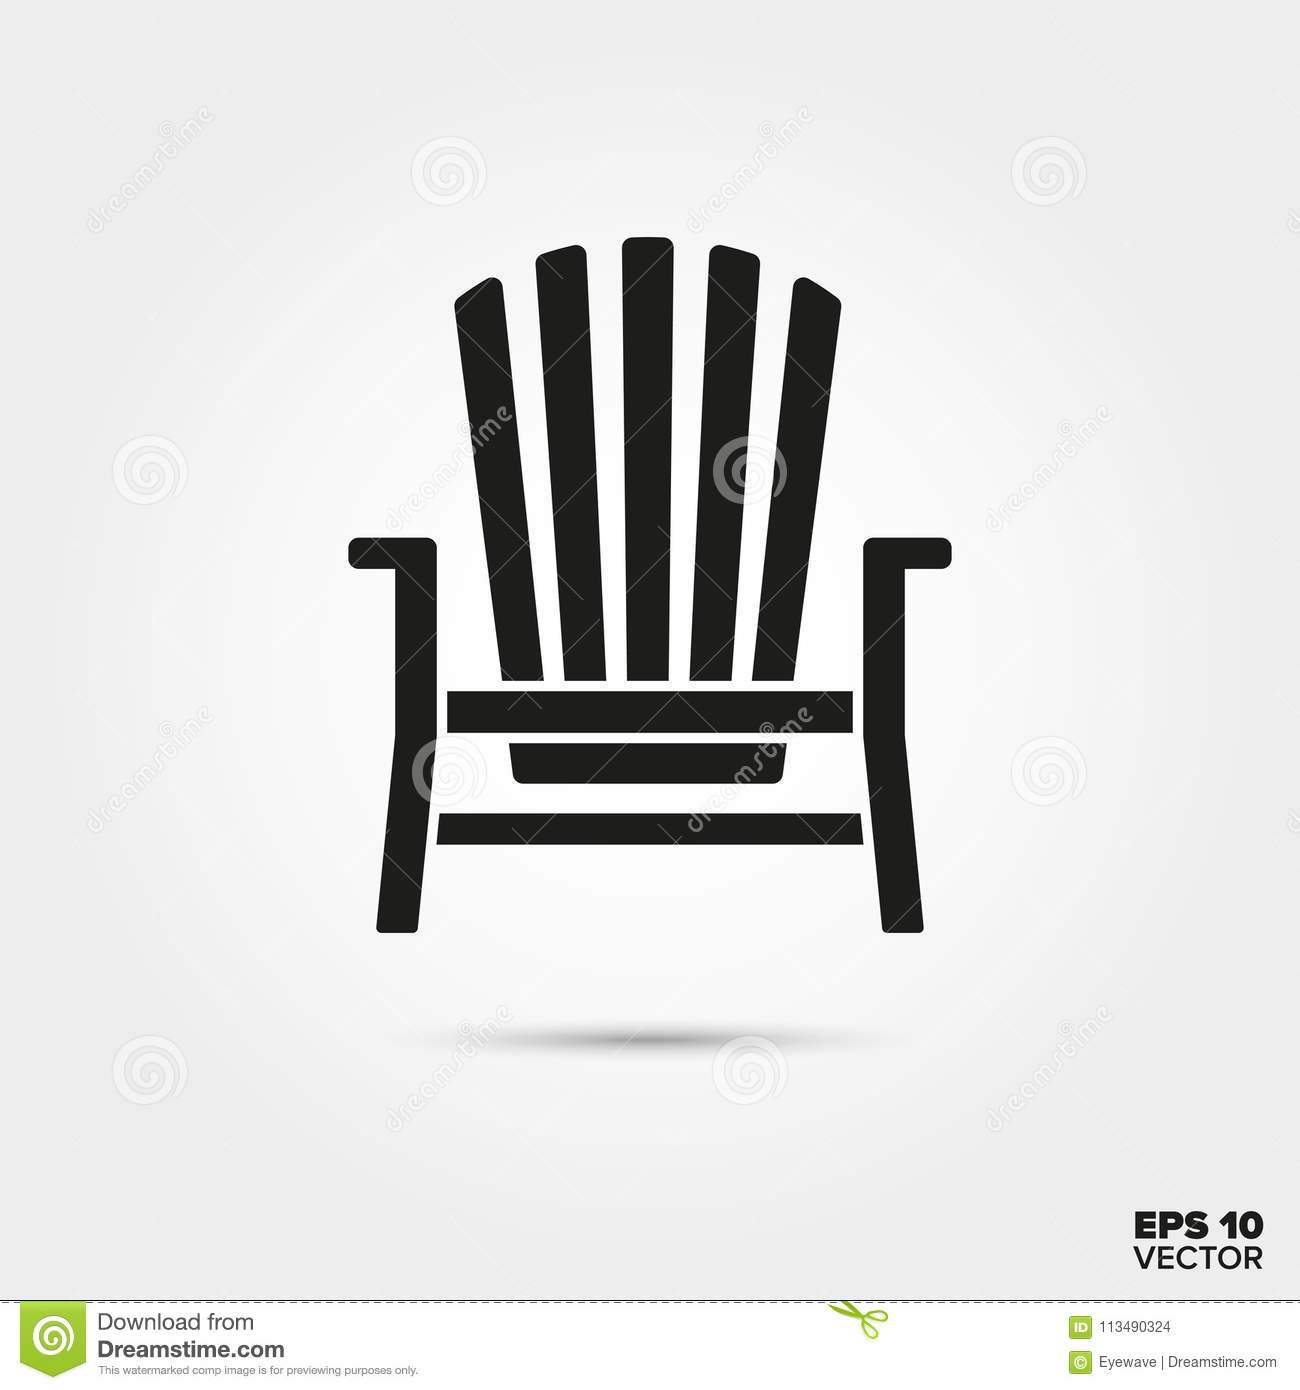 Awe Inspiring Adirondack Chair Vector Icon Stock Vector Illustration Of Beatyapartments Chair Design Images Beatyapartmentscom